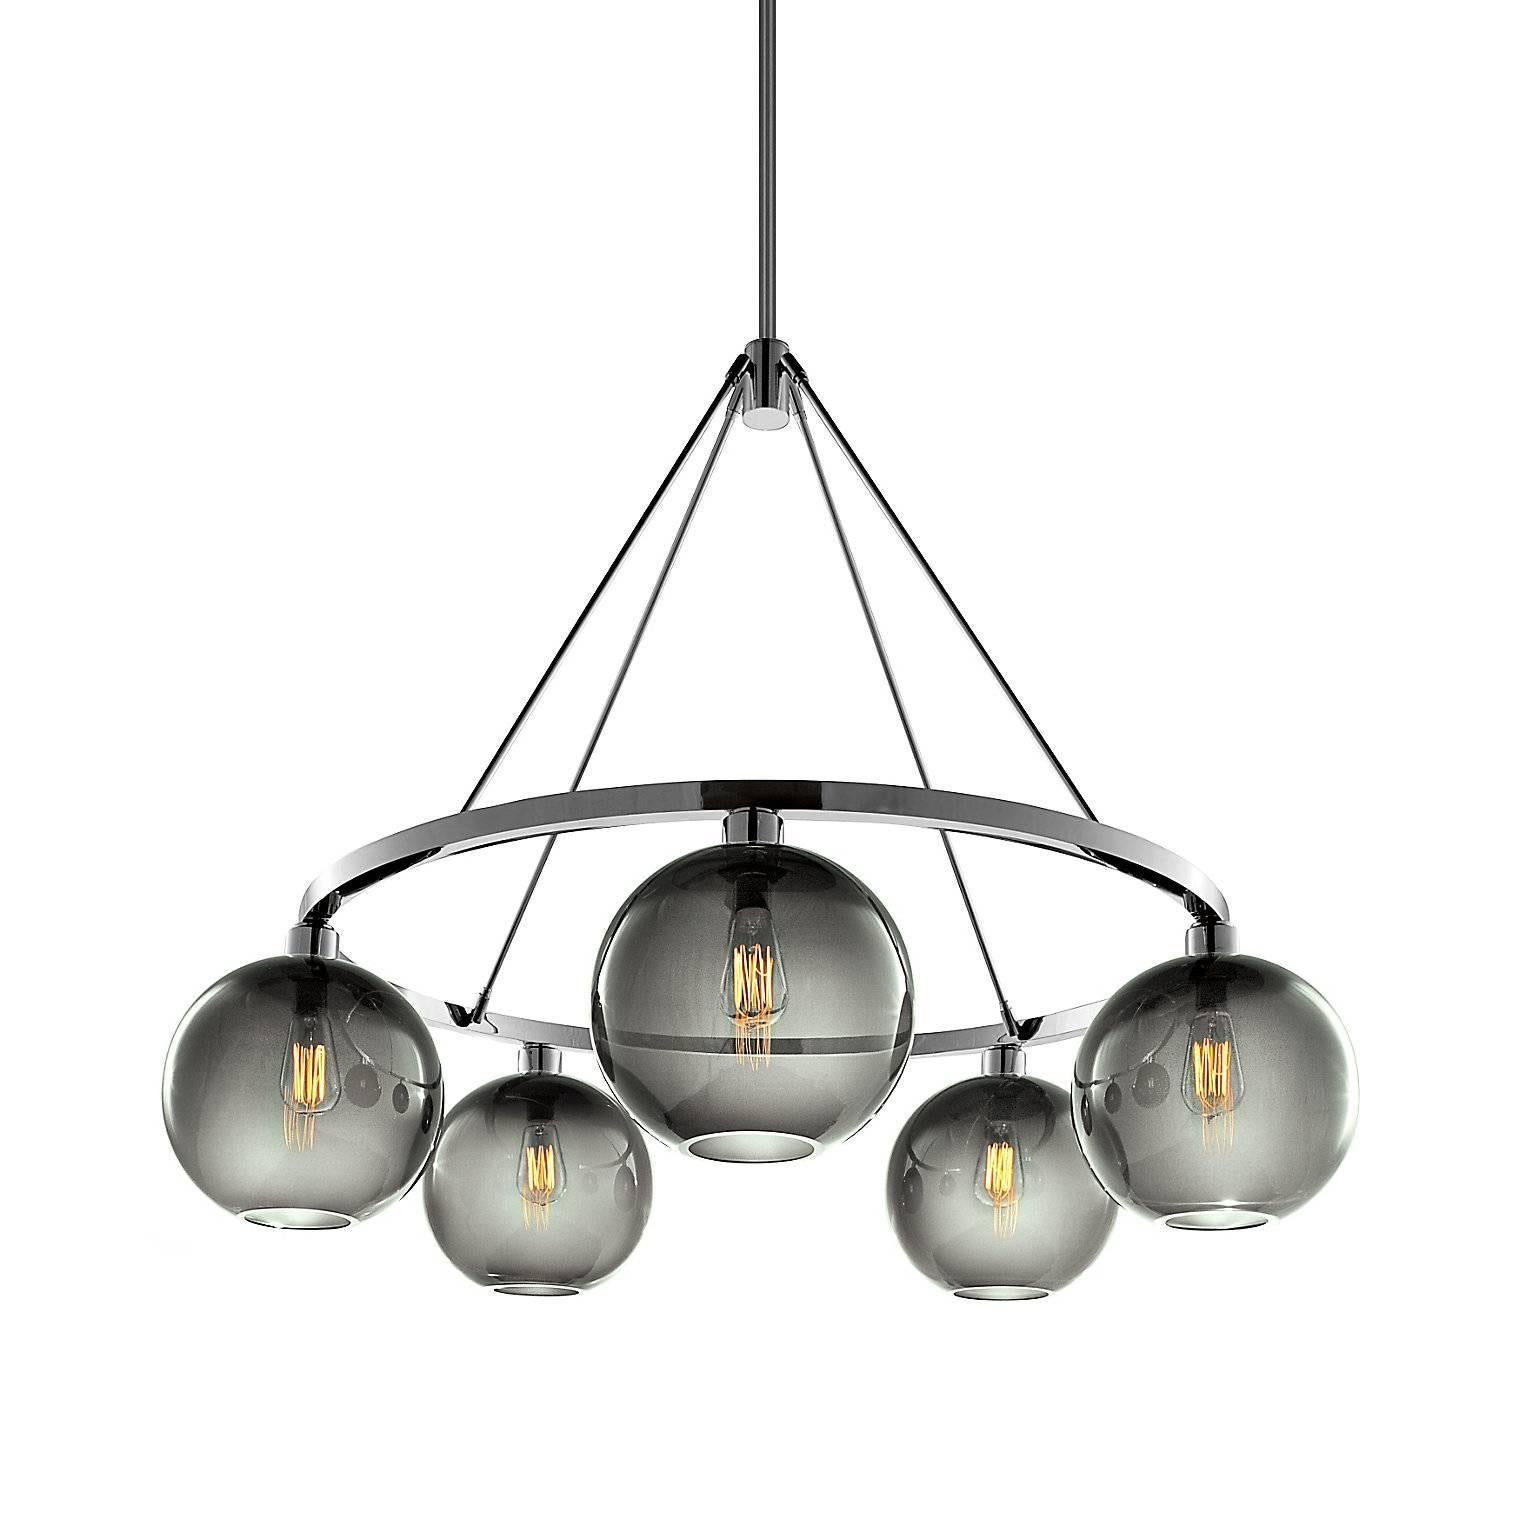 Solitaire Gray Handblown Modern Glass Polished Nickel Chandelier Light, Made in